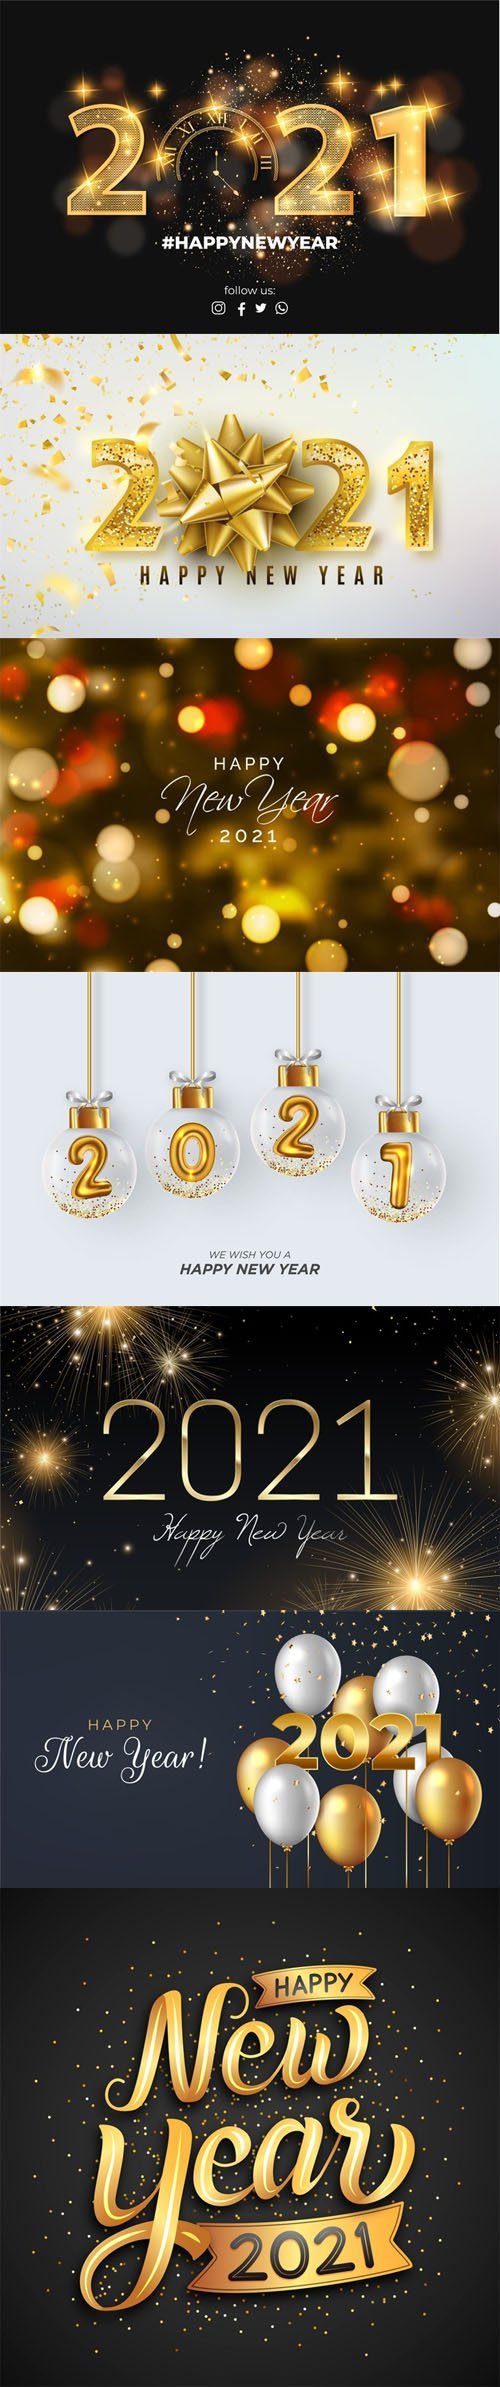 7 Happy New Year 2021 Backgrounds in Vector